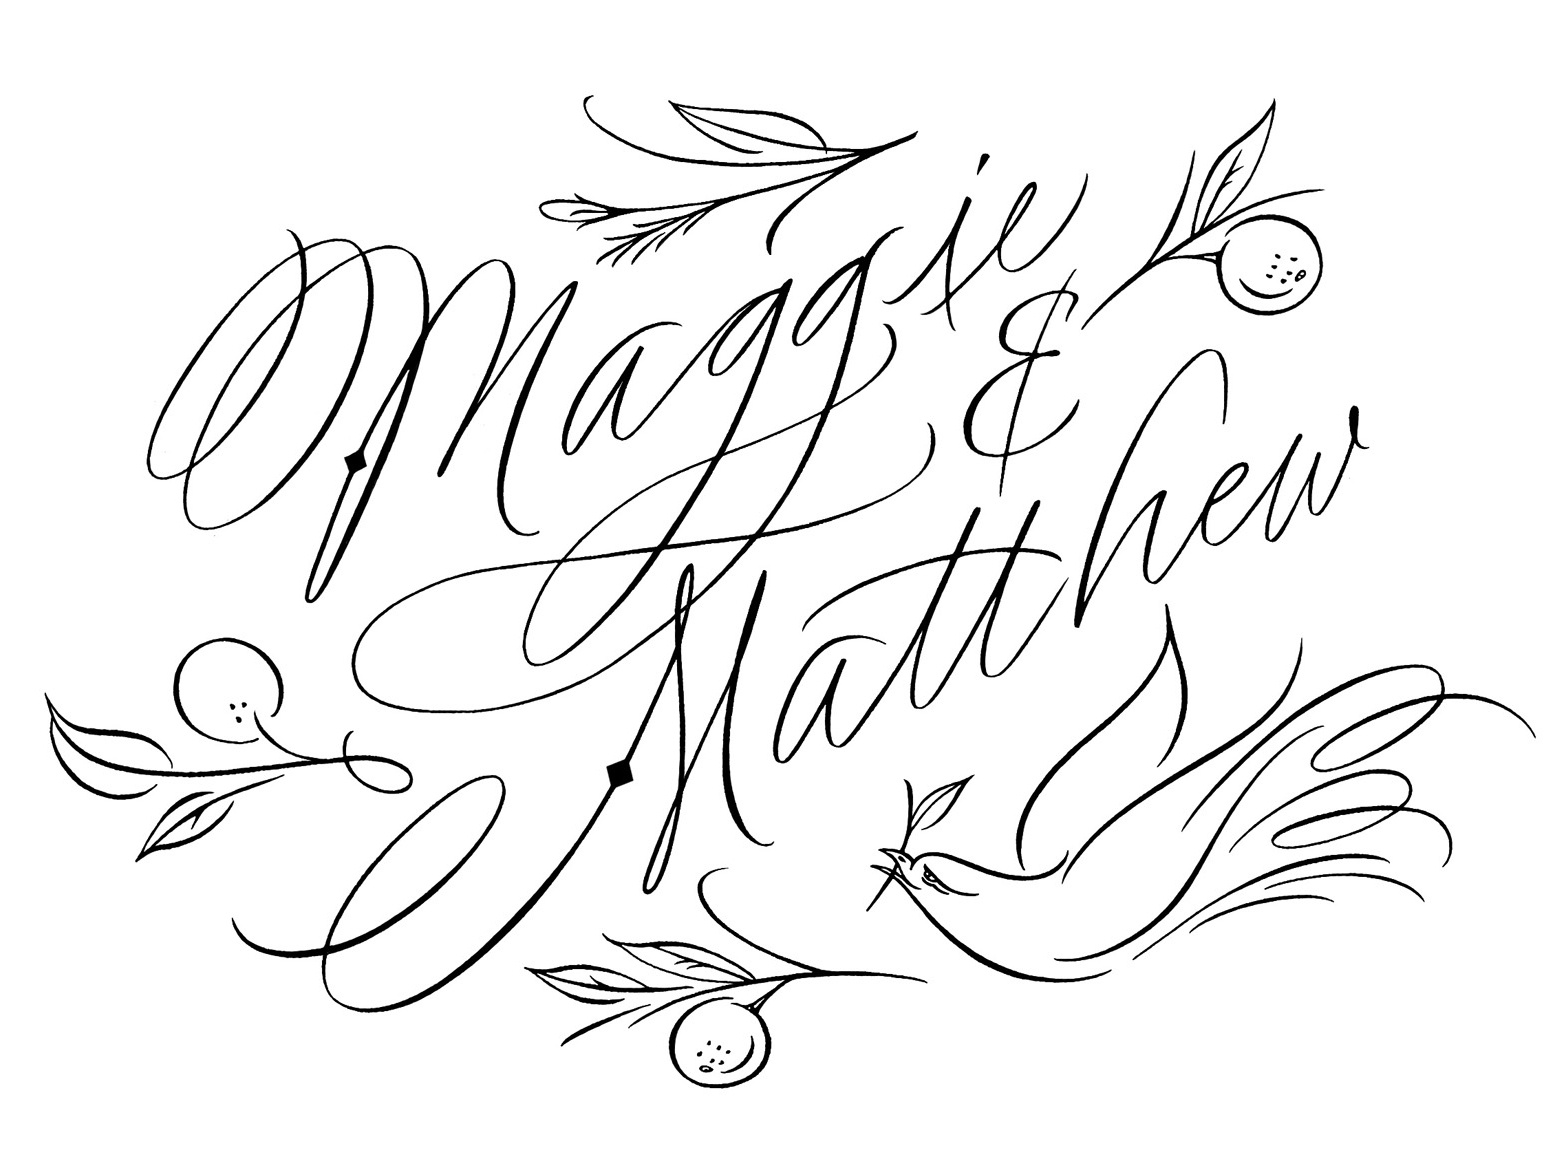 Maggie and Matt design illustration hand-lettering hand lettering calligraphy